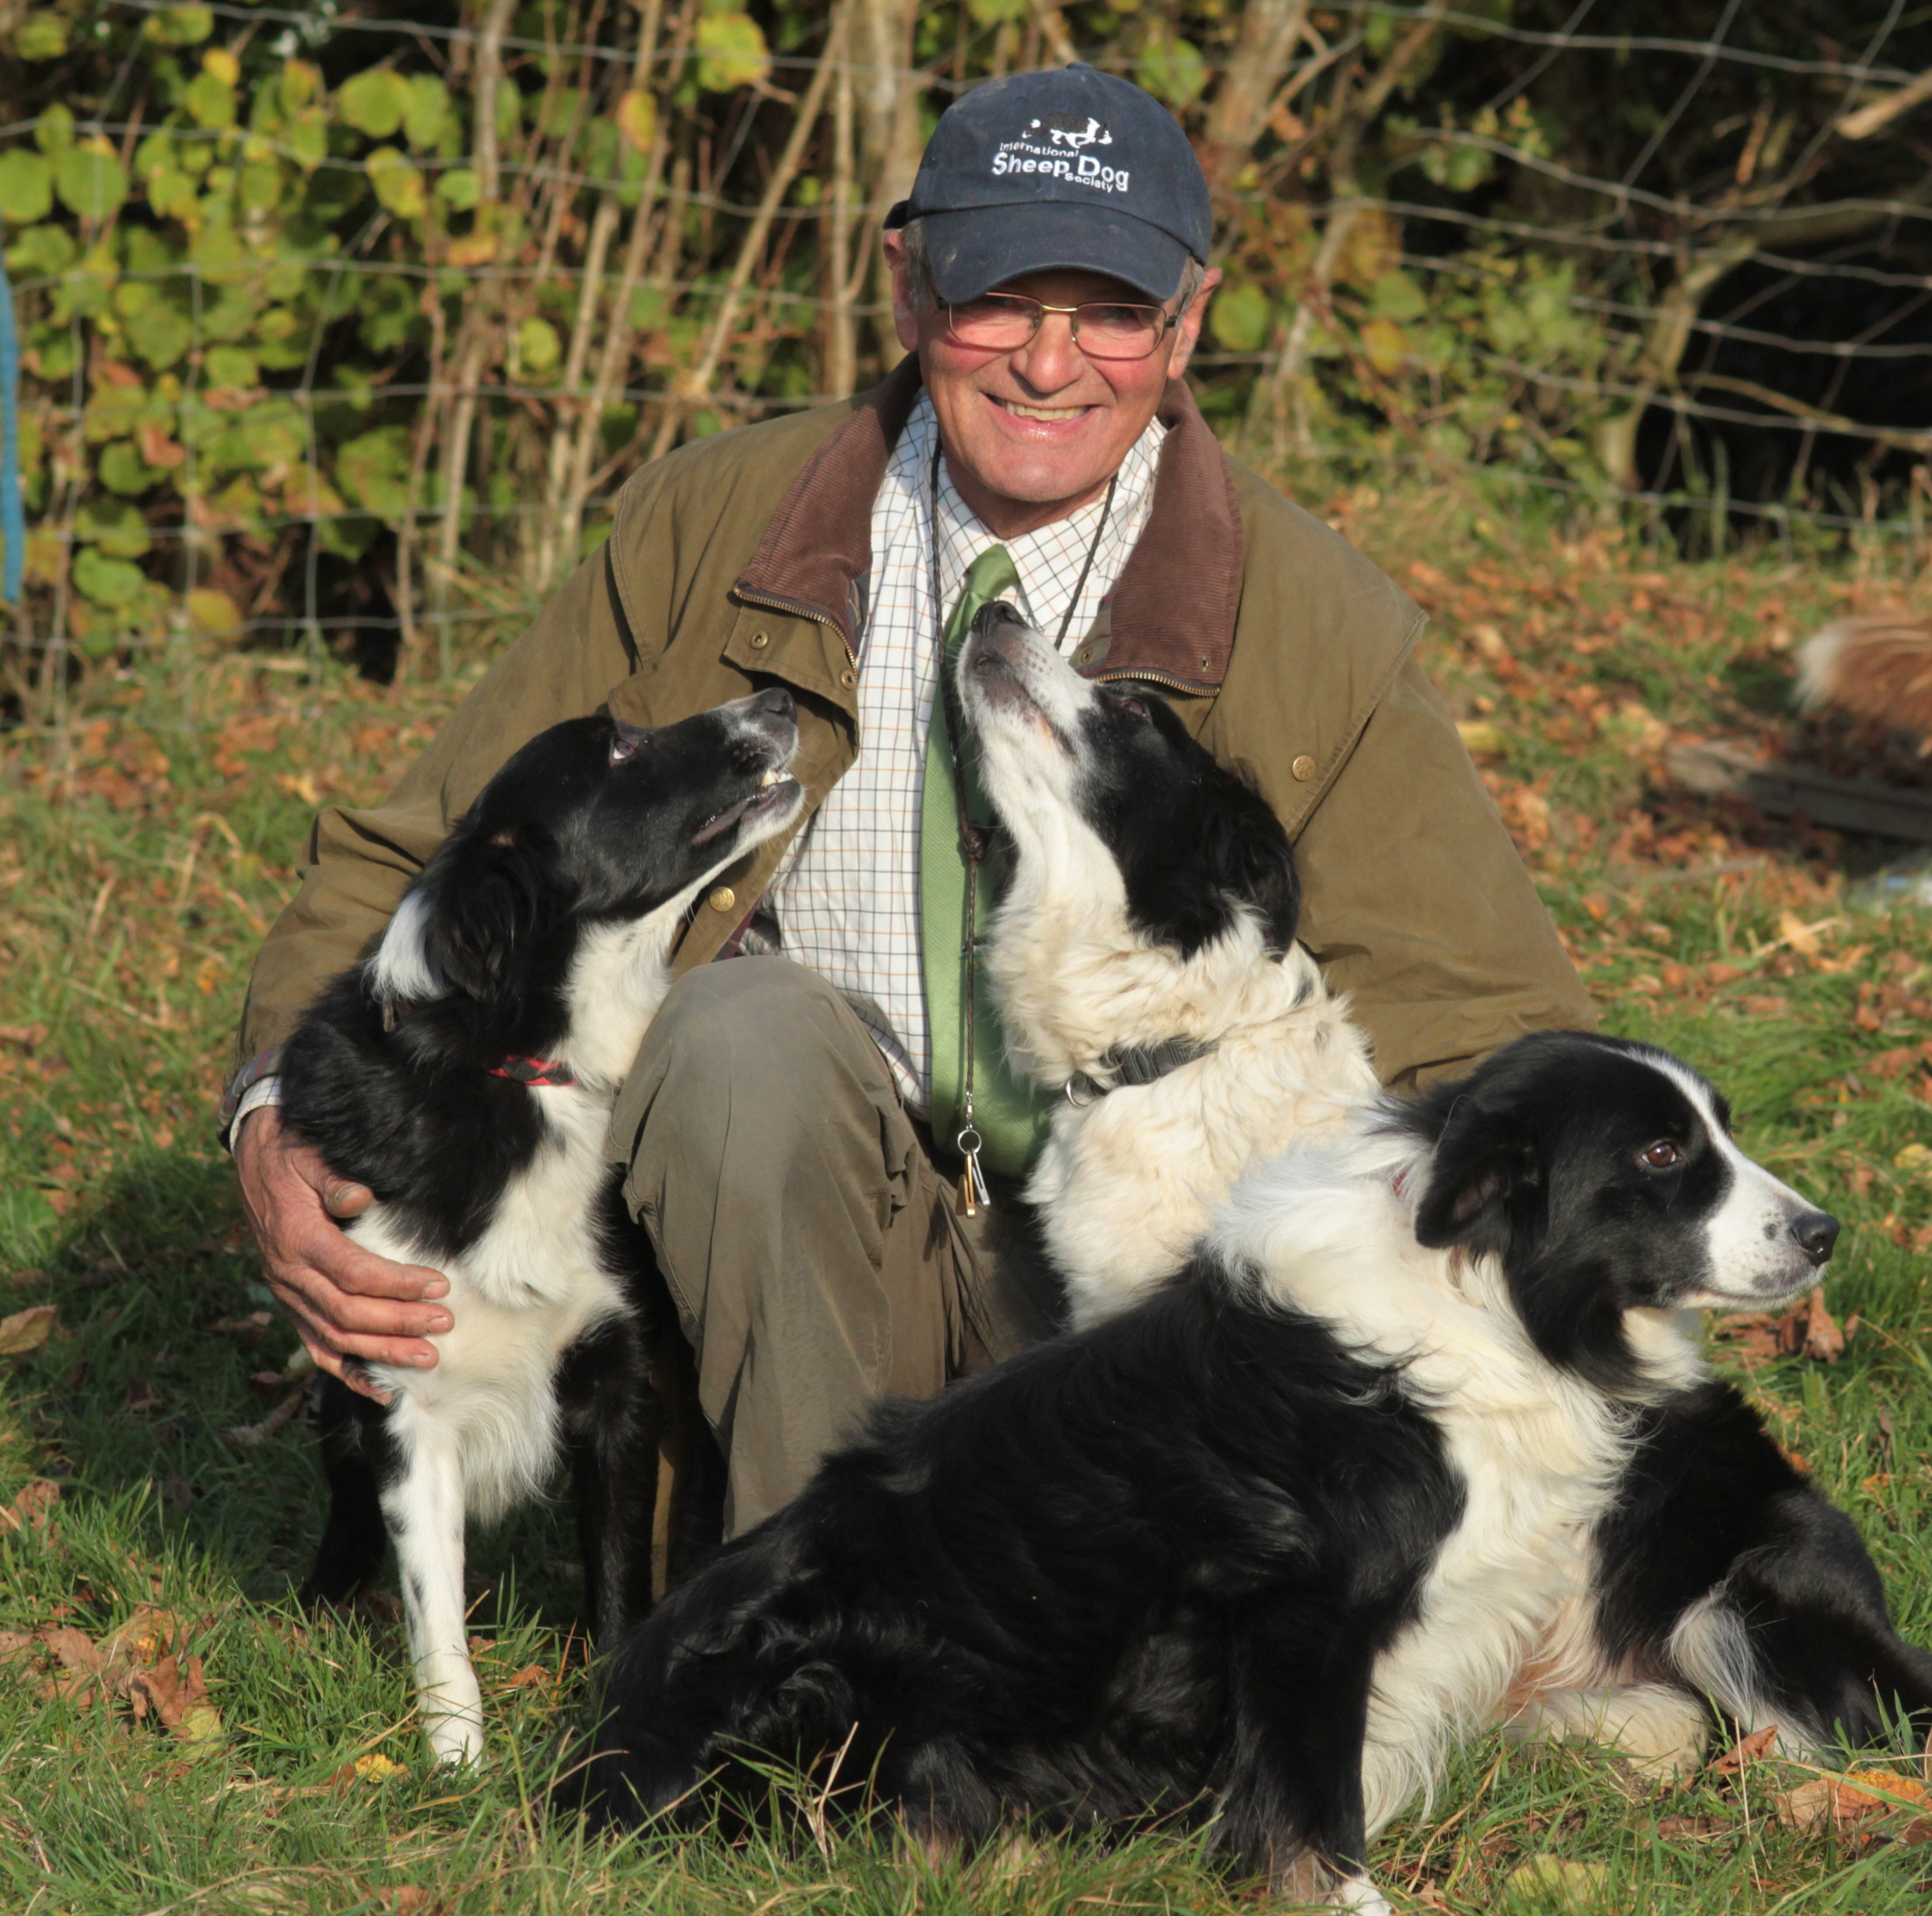 al with his beautiful border collies